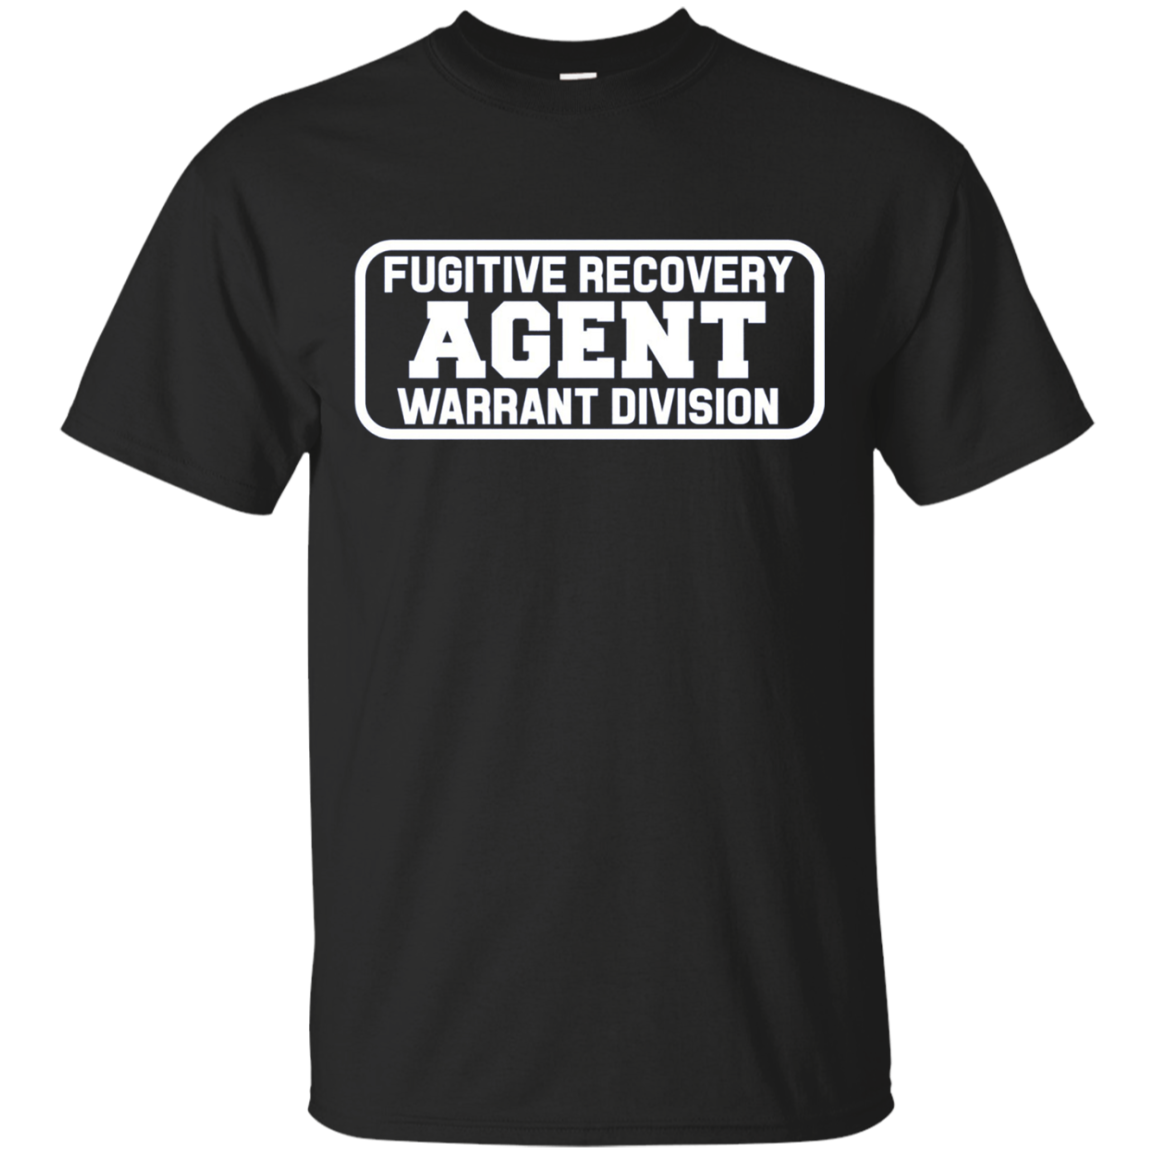 Fugitive Recovery Agent Shirt for Bounty Hunters Bail